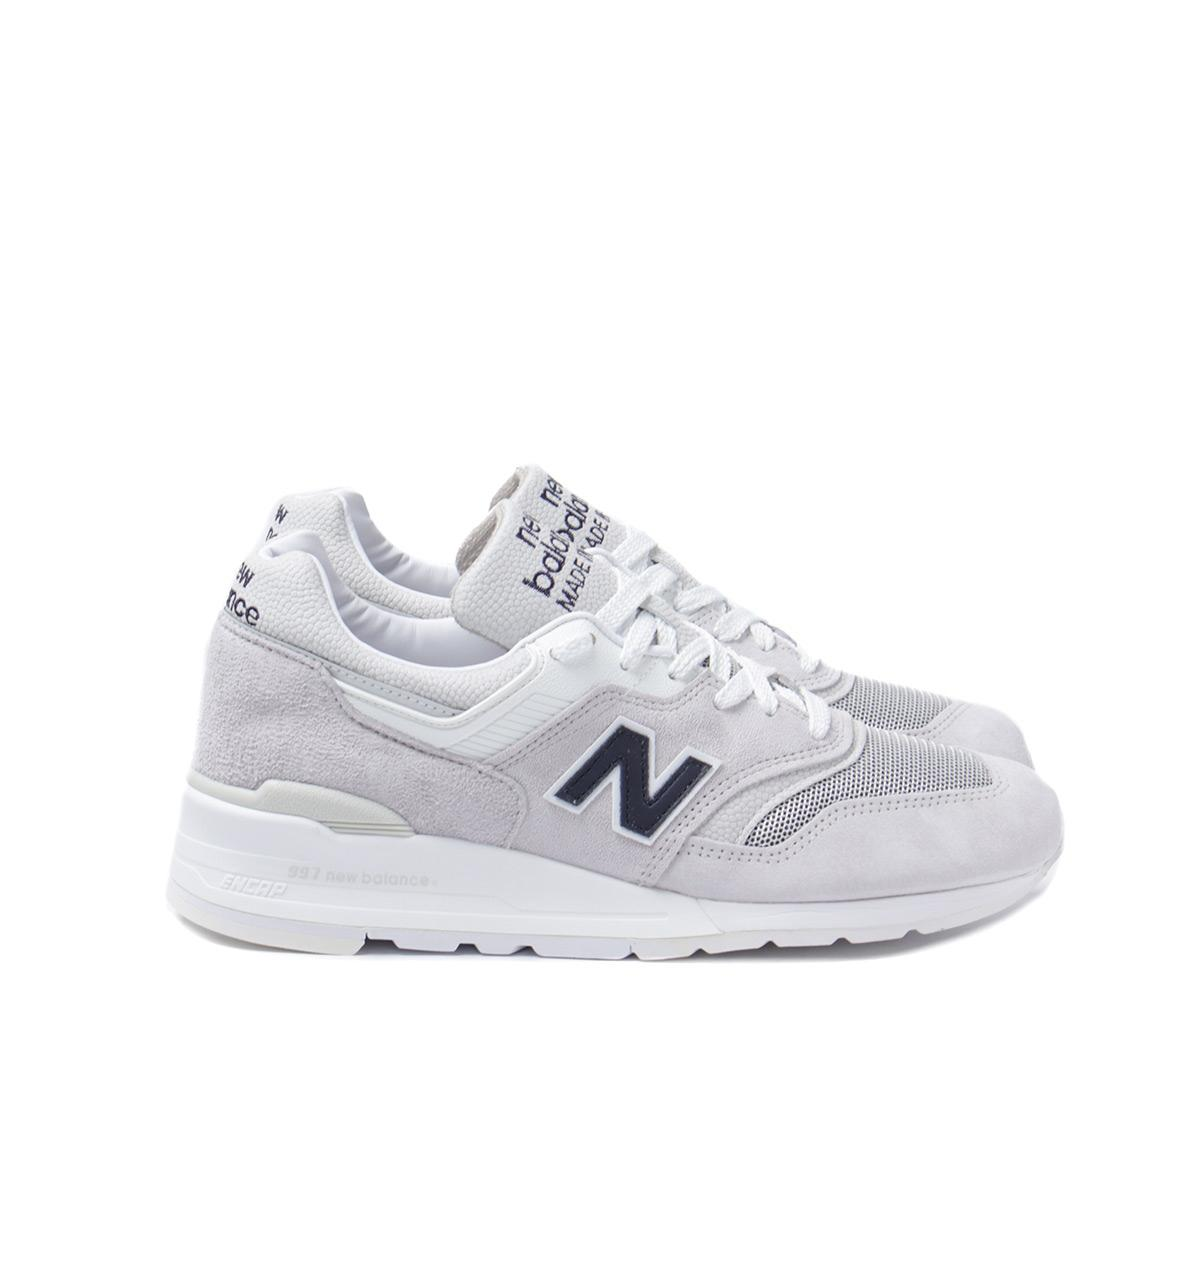 cbff540aaa2475 Lyst - New Balance 997 Made In The Usa Crystal Grey Trainers in Gray ...